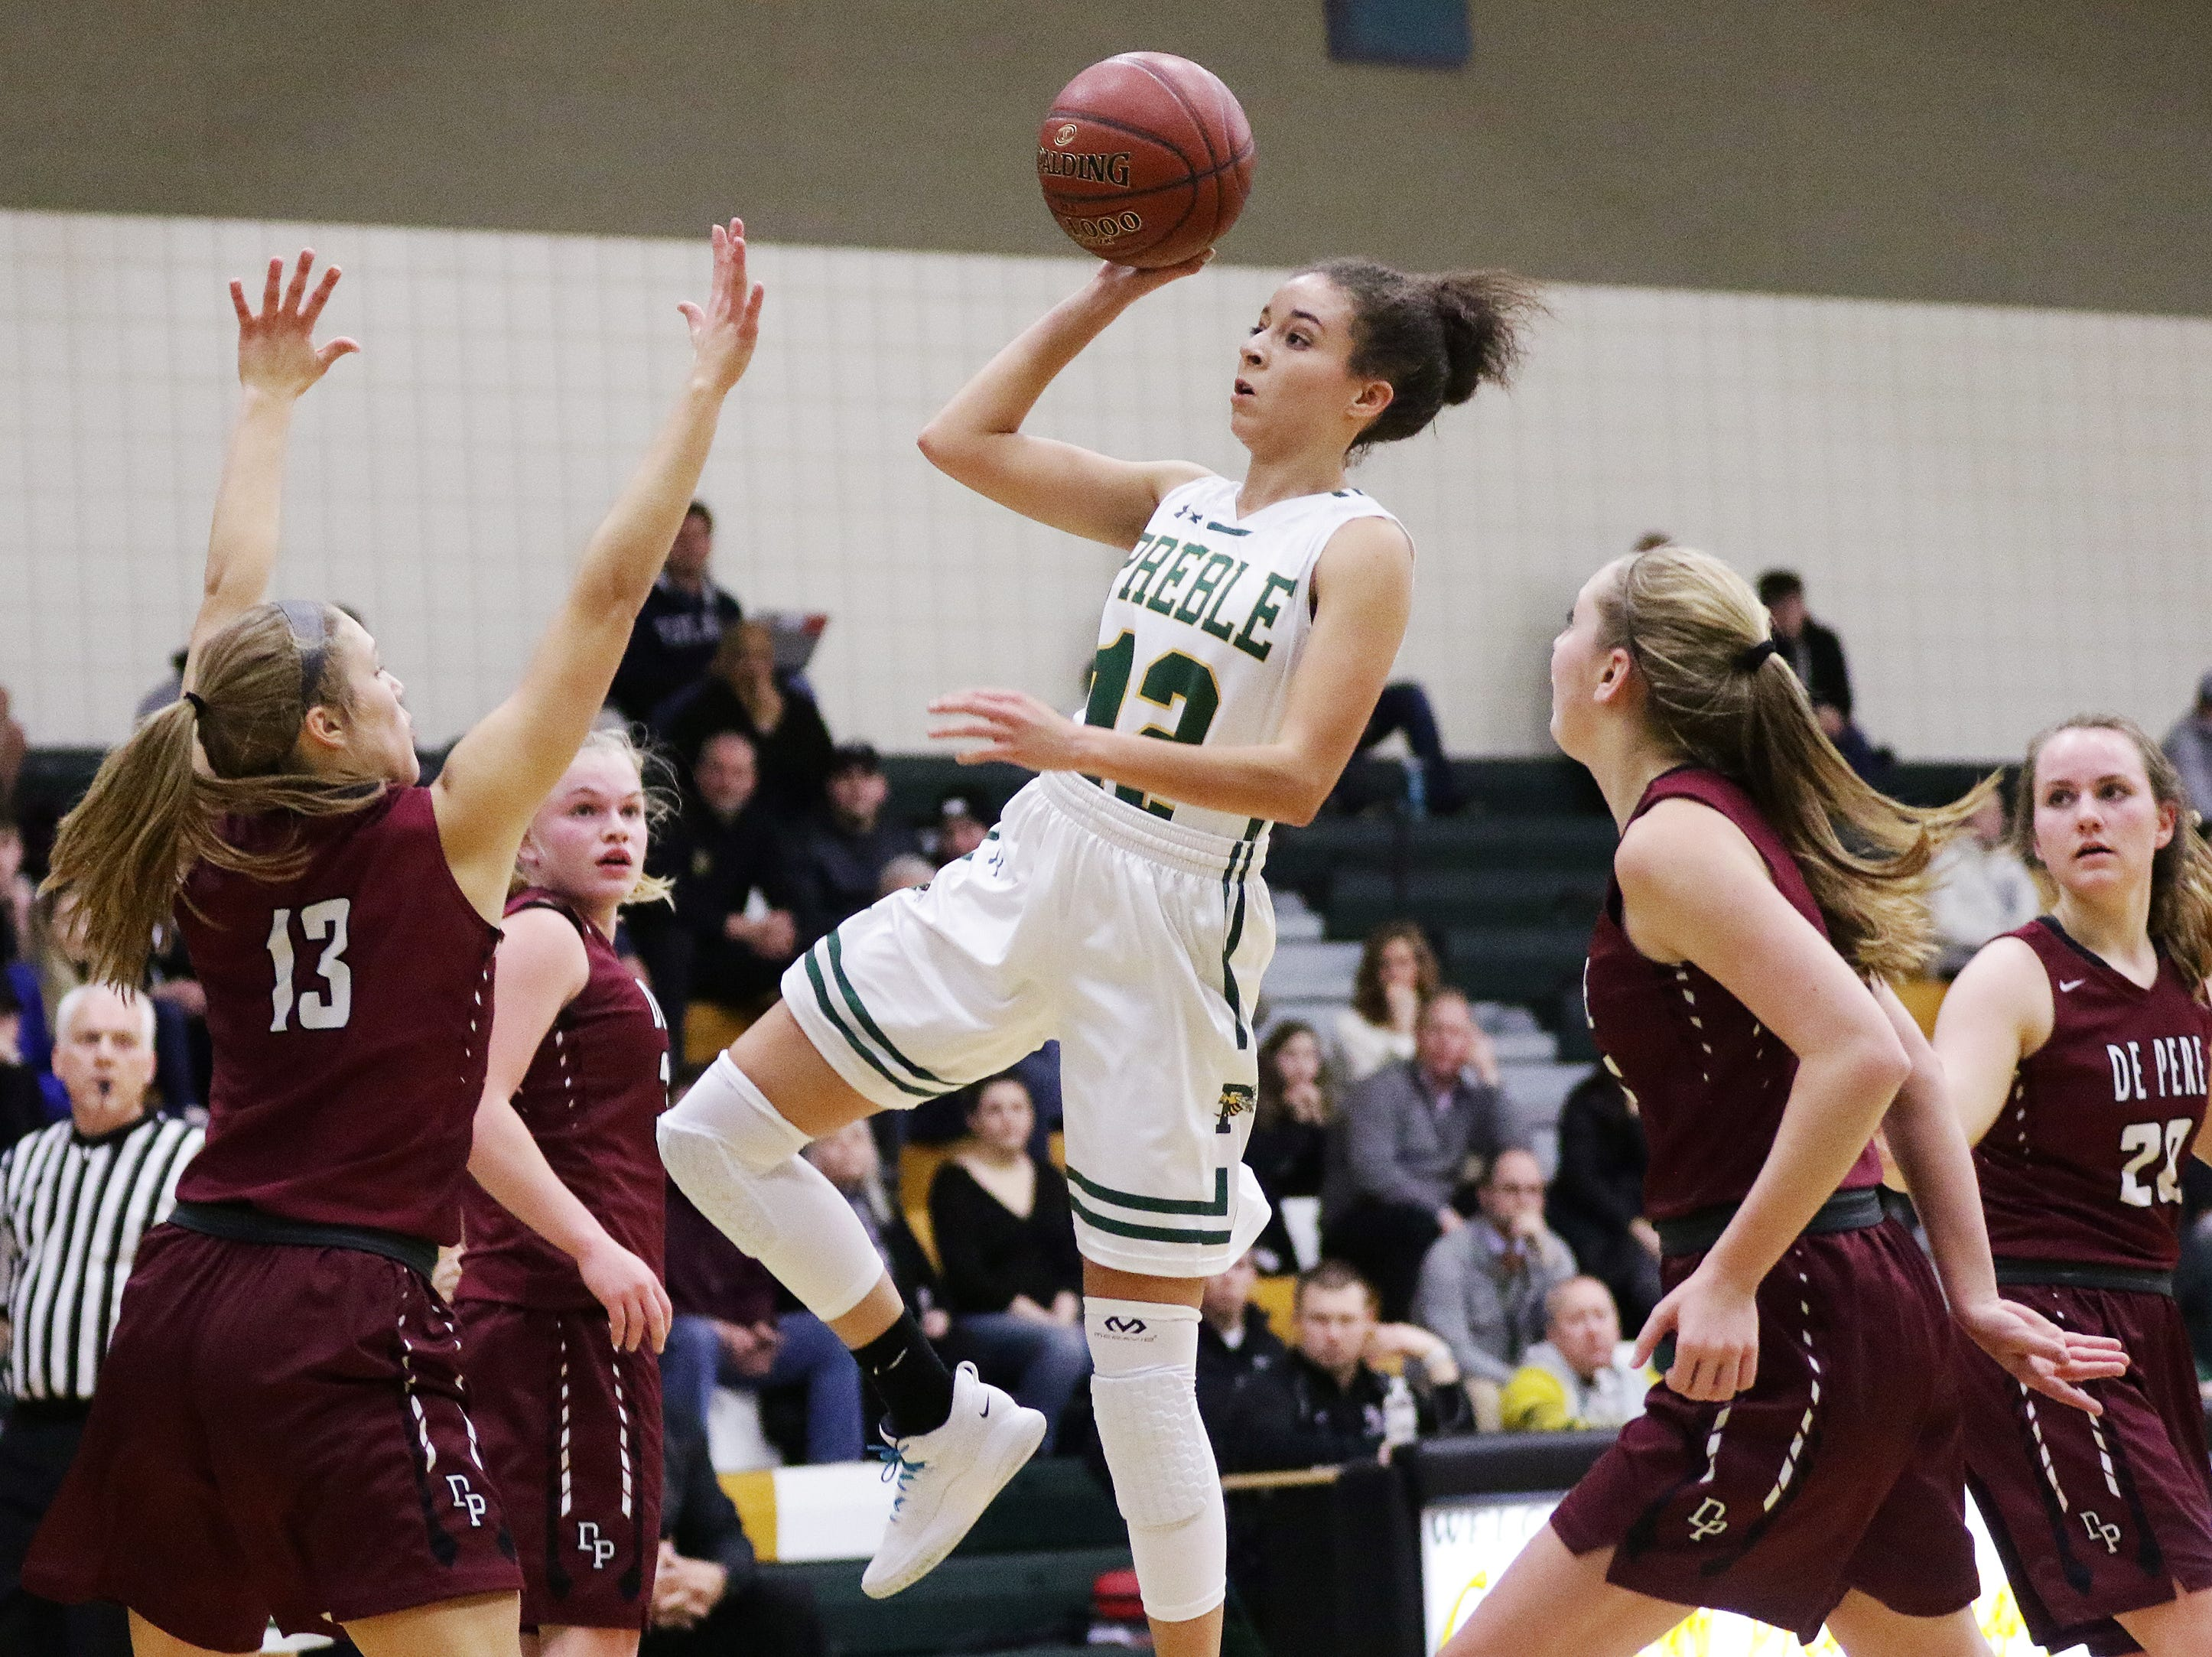 Green Bay Preble's Hannah Beauchamp (12) shoots against De Pere in a girls basketball game at Preble high school on Tuesday, January 8, 2019 in Green Bay, Wis.